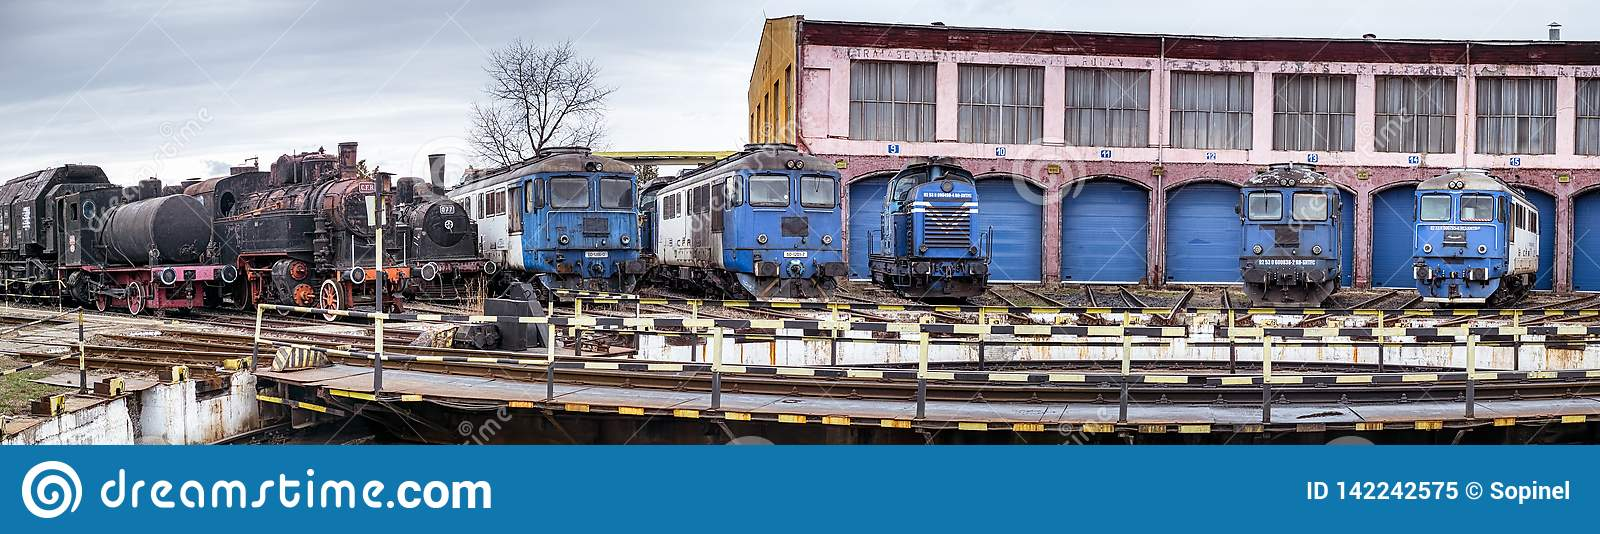 Railway depot with old steam and modern diesel locomotives